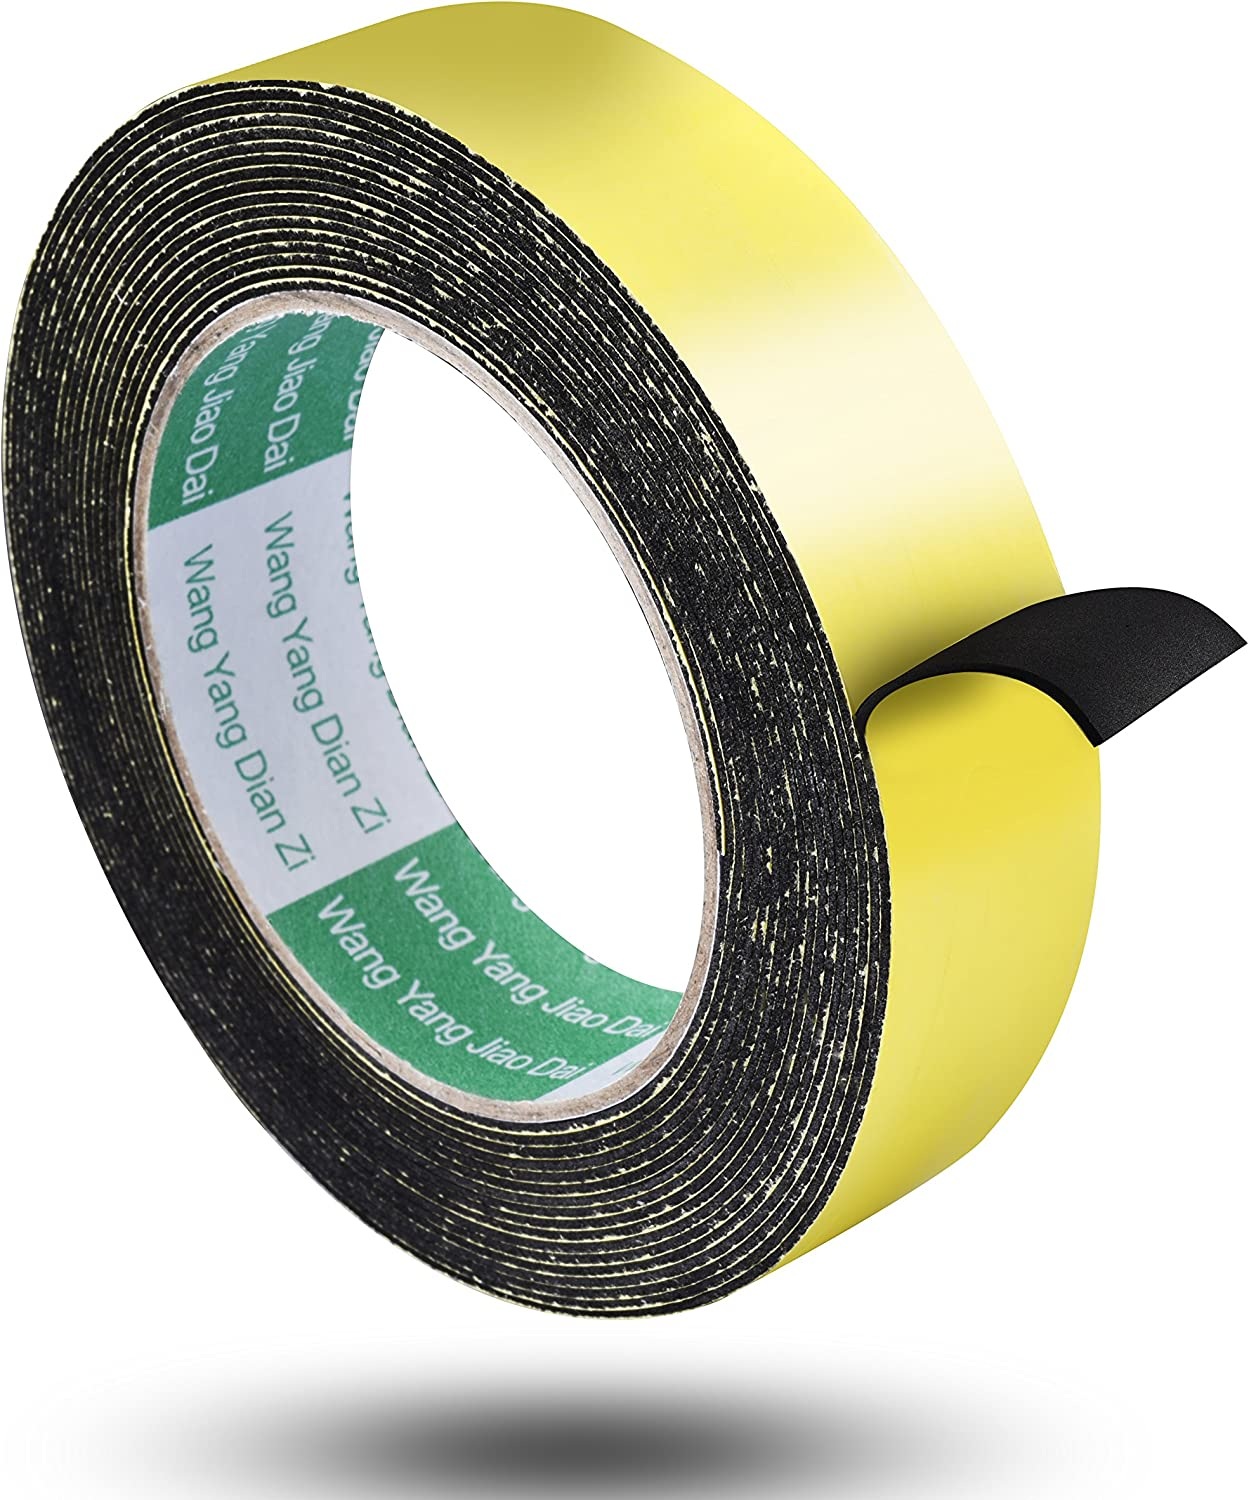 Aweking Double Sided Sponge Tape 3mm Thickness 8mm x 4m, Water Resistant,Shock Absorbing,Sound Deadened Insulation,Dust Sealing,Fixed,Black